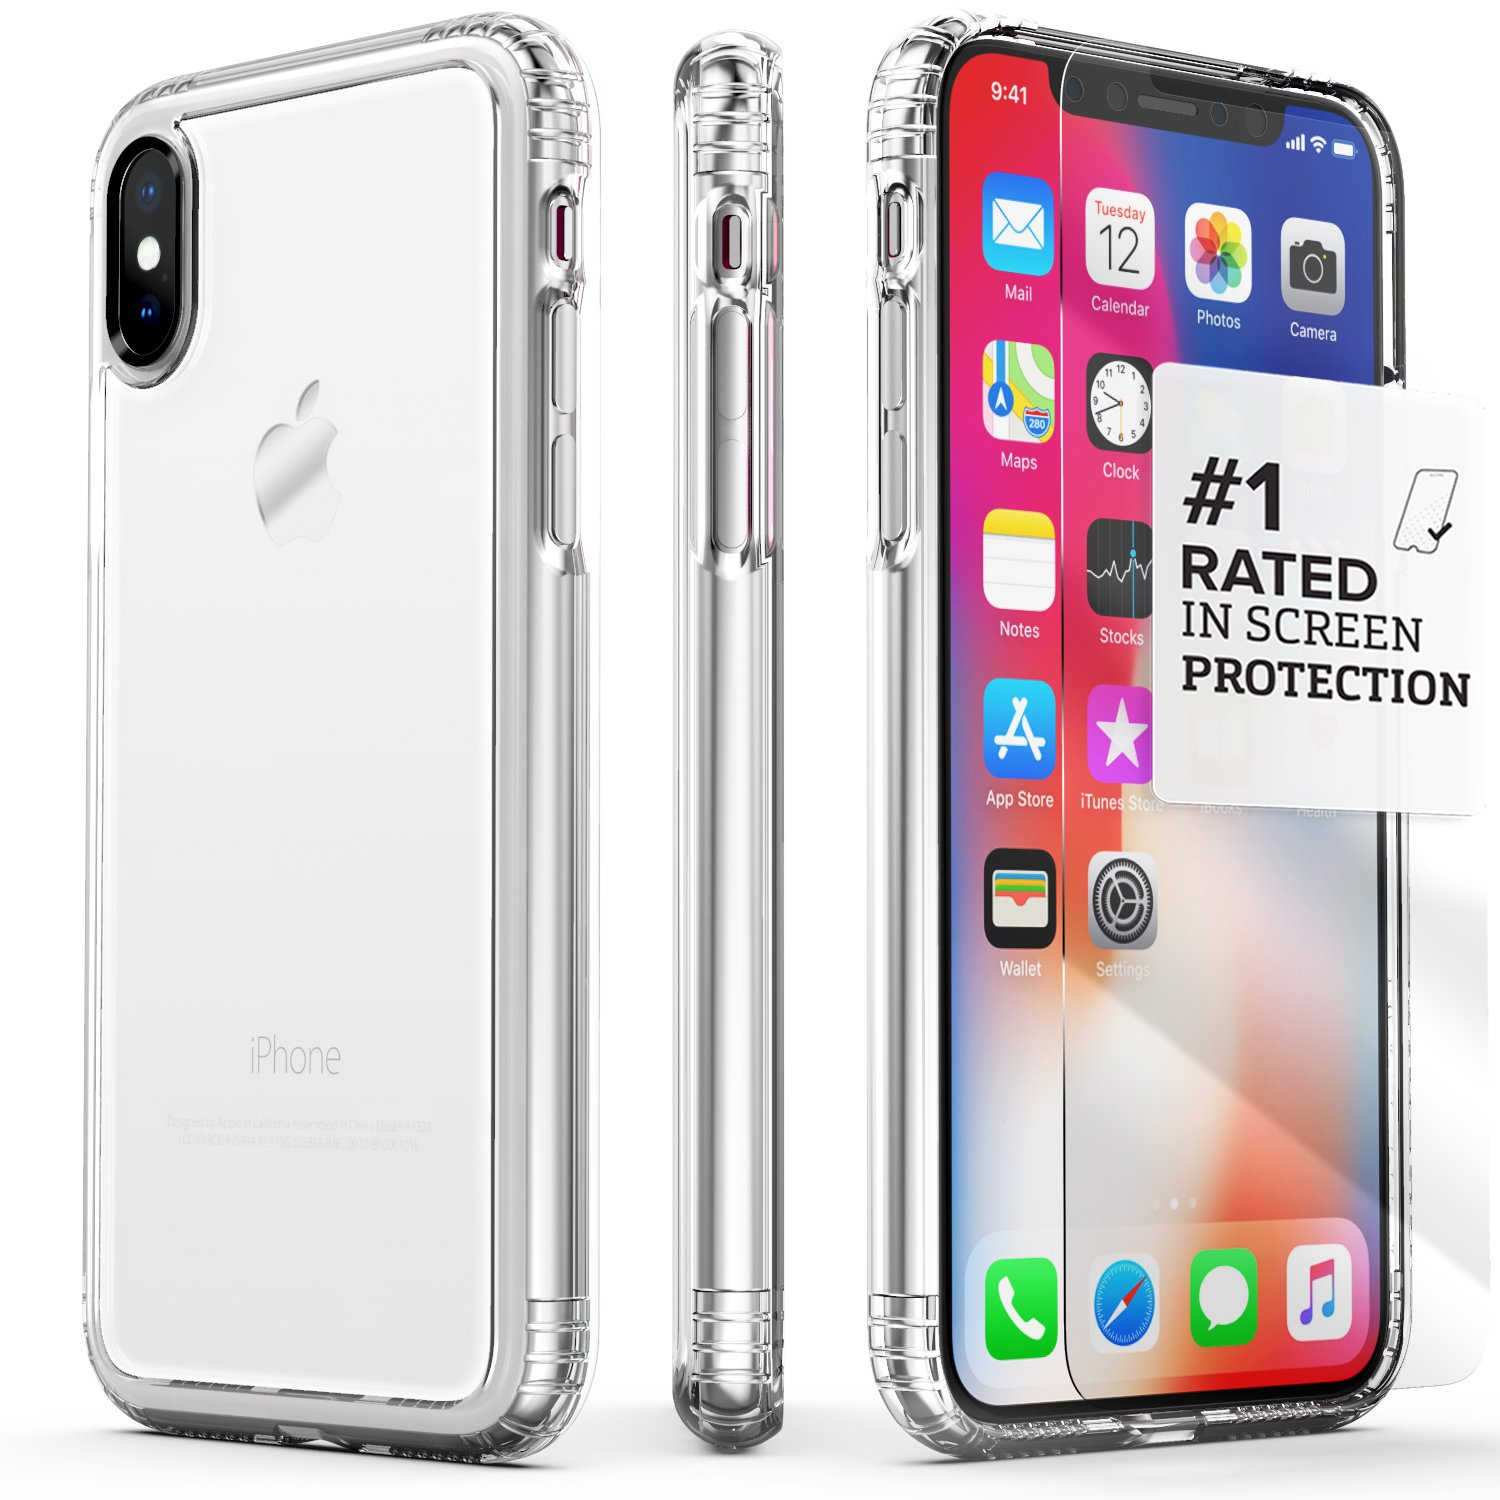 iPhone X Case, SaharaCase Protective Kit Bundle with [ZeroDamage Tempered Glass Screen Protector] Rugged Protection Anti-Slip Grip [Shockproof Bumper] Anti-Scratch Back Slim Fit iPhone 10 - Clear